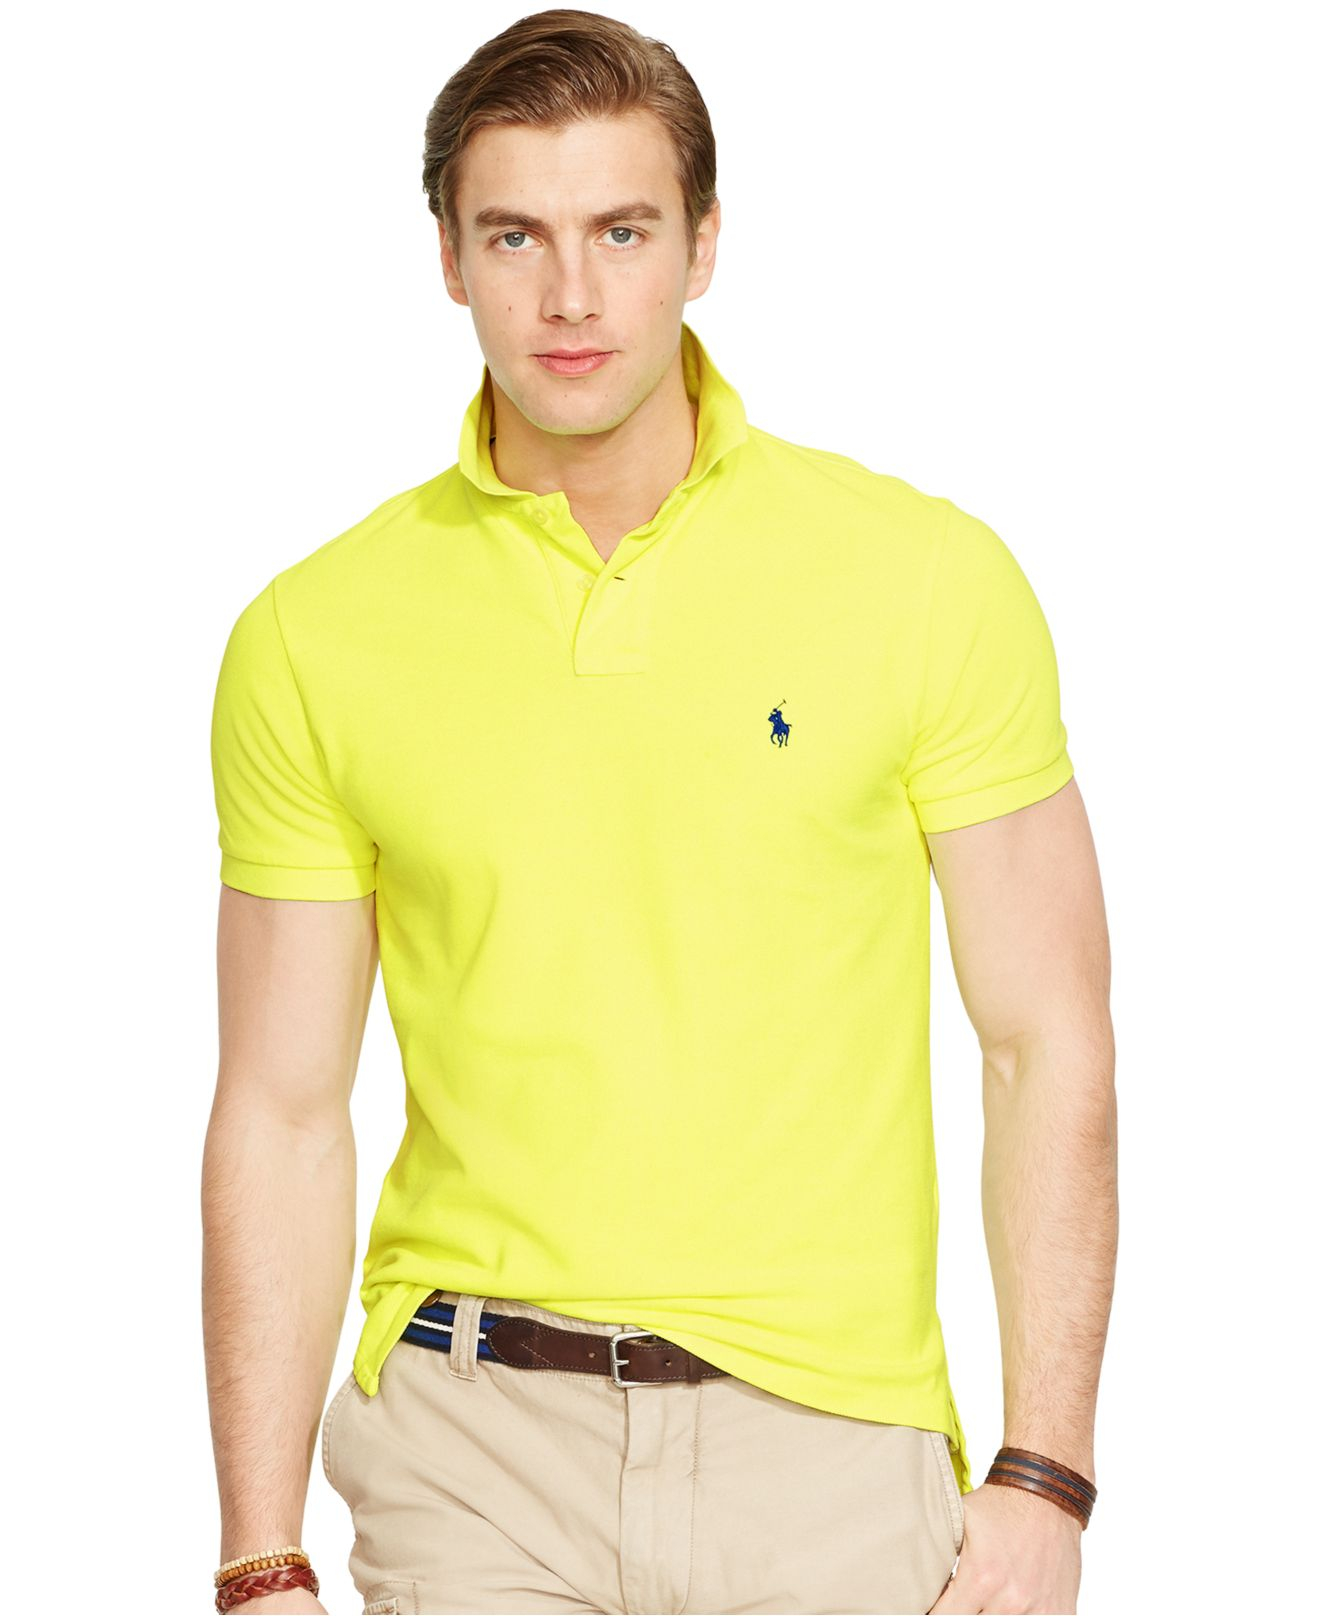 Polo ralph lauren custom fit neon mesh polo shirt in for Ralph lauren custom fit mesh polo shirt